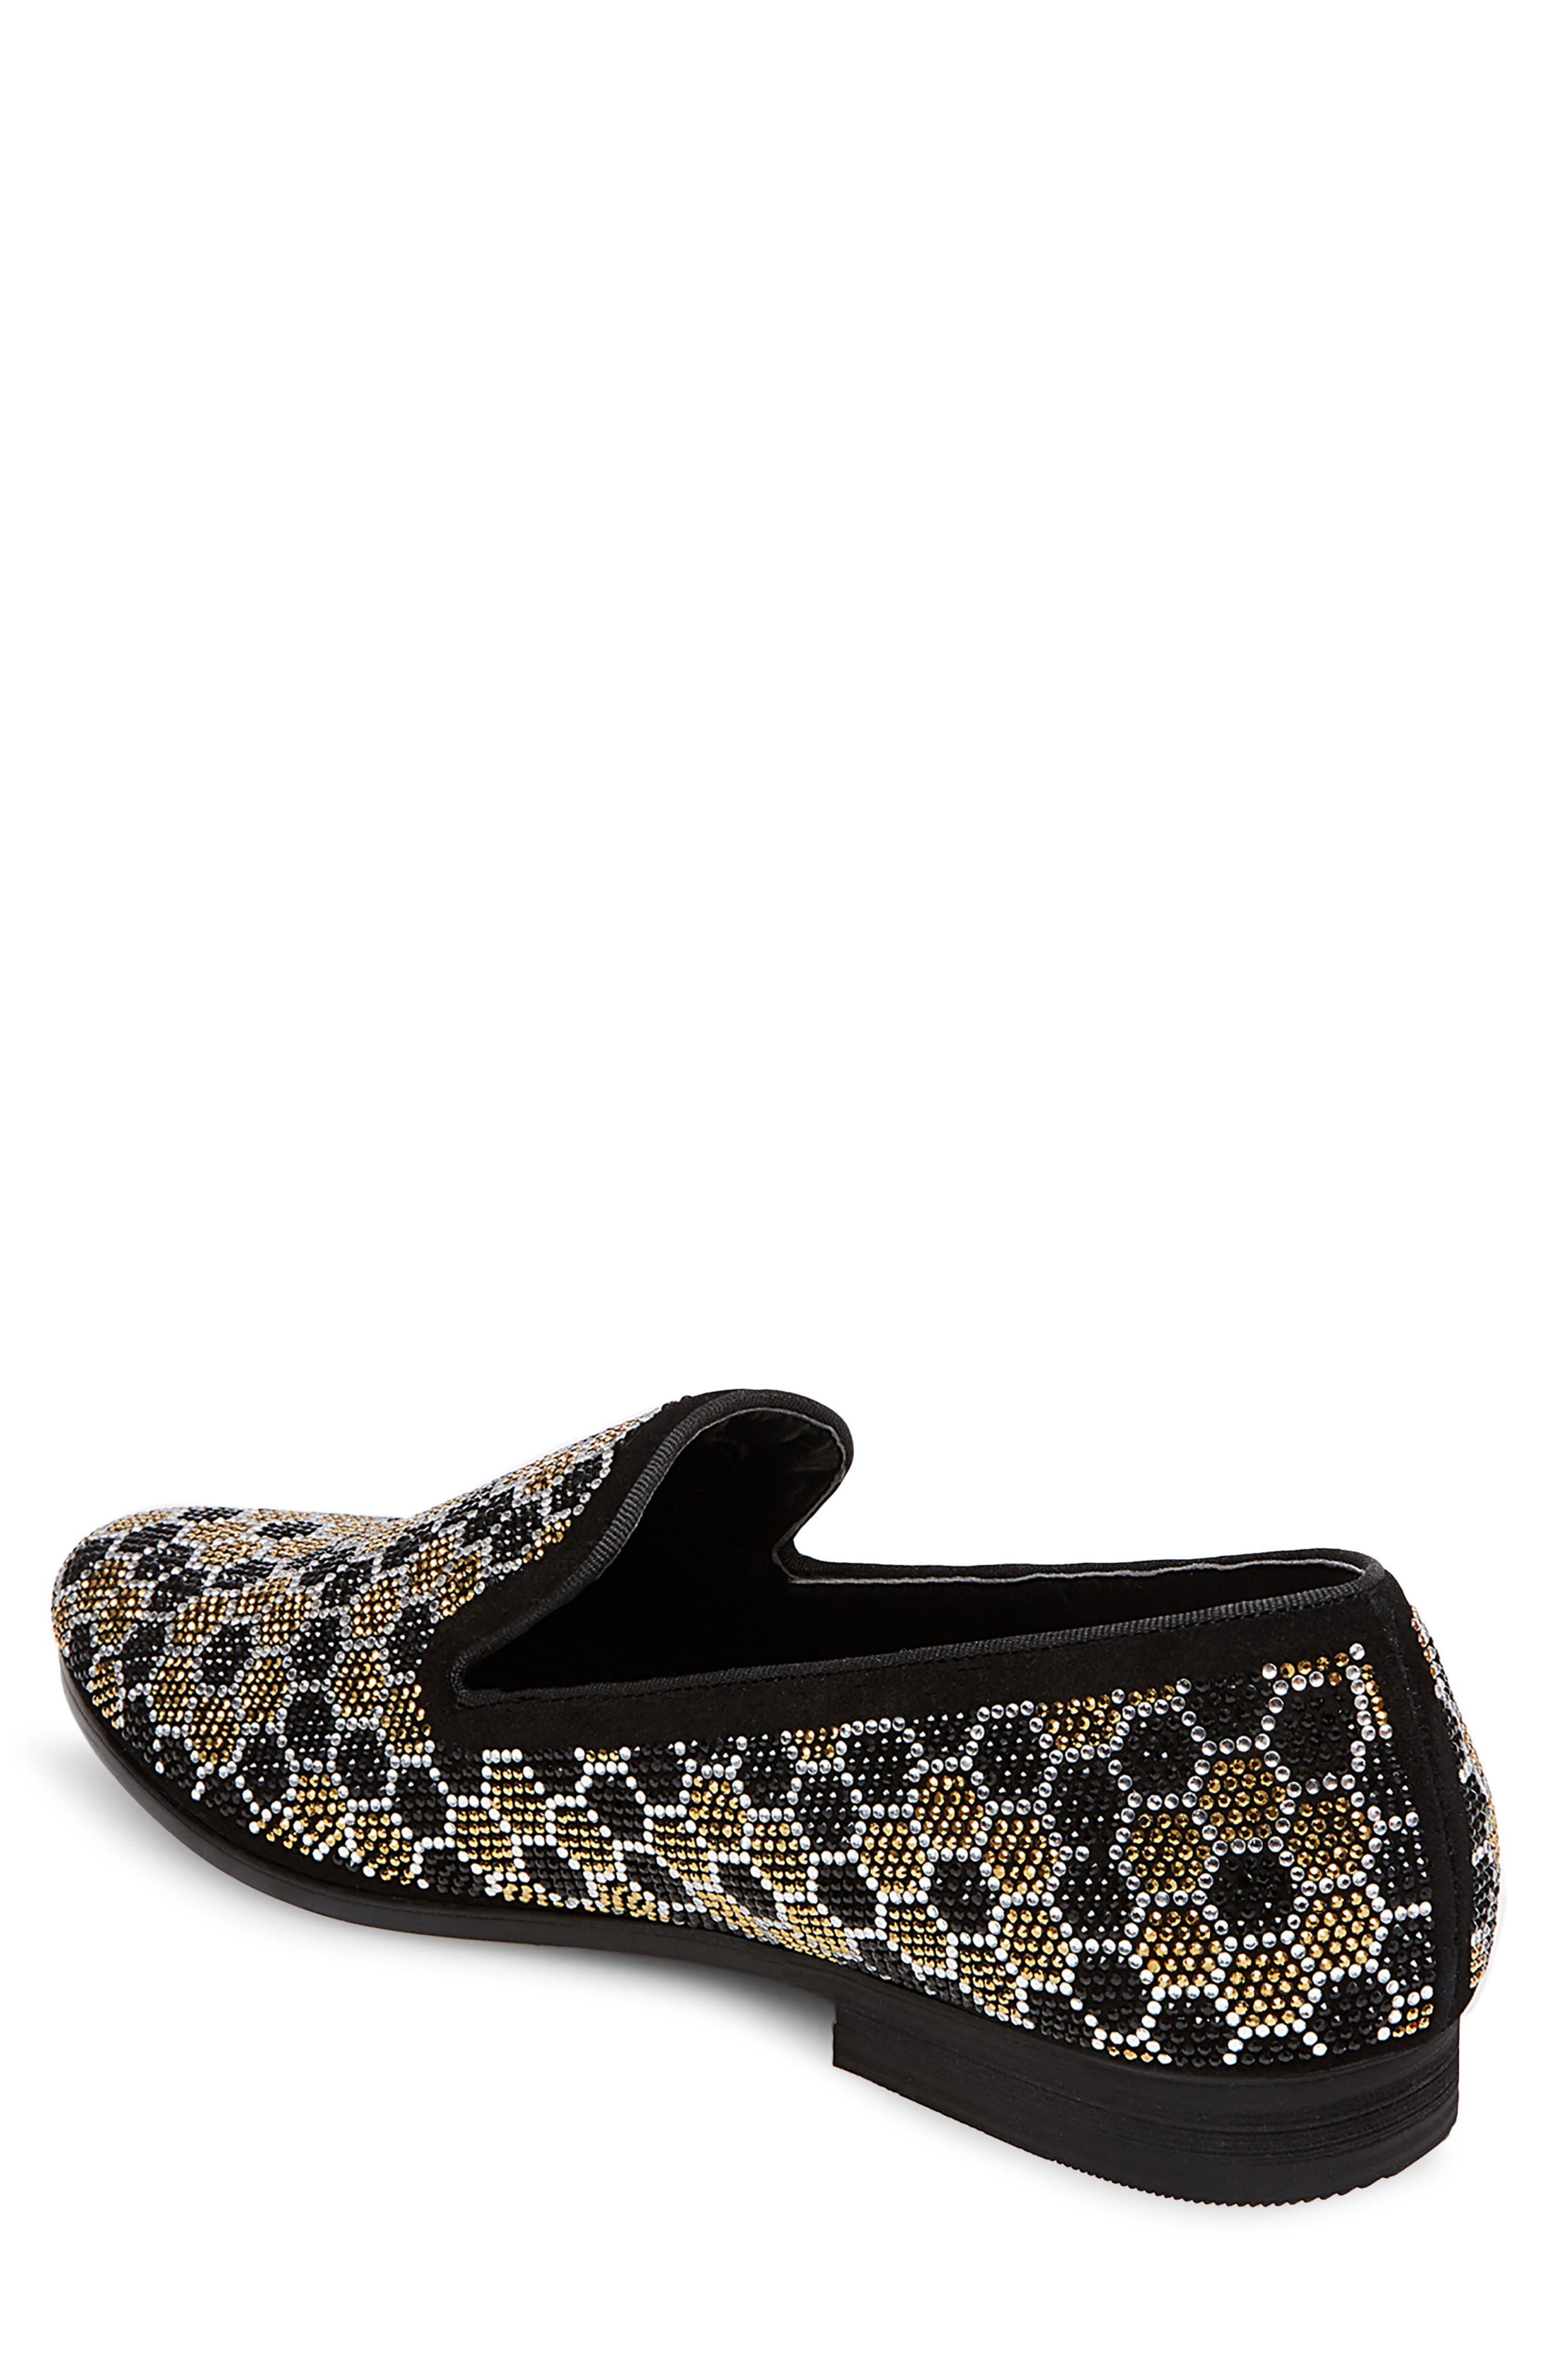 Caspian Studded Venetian Loafer,                             Alternate thumbnail 2, color,                             Black/ Gold